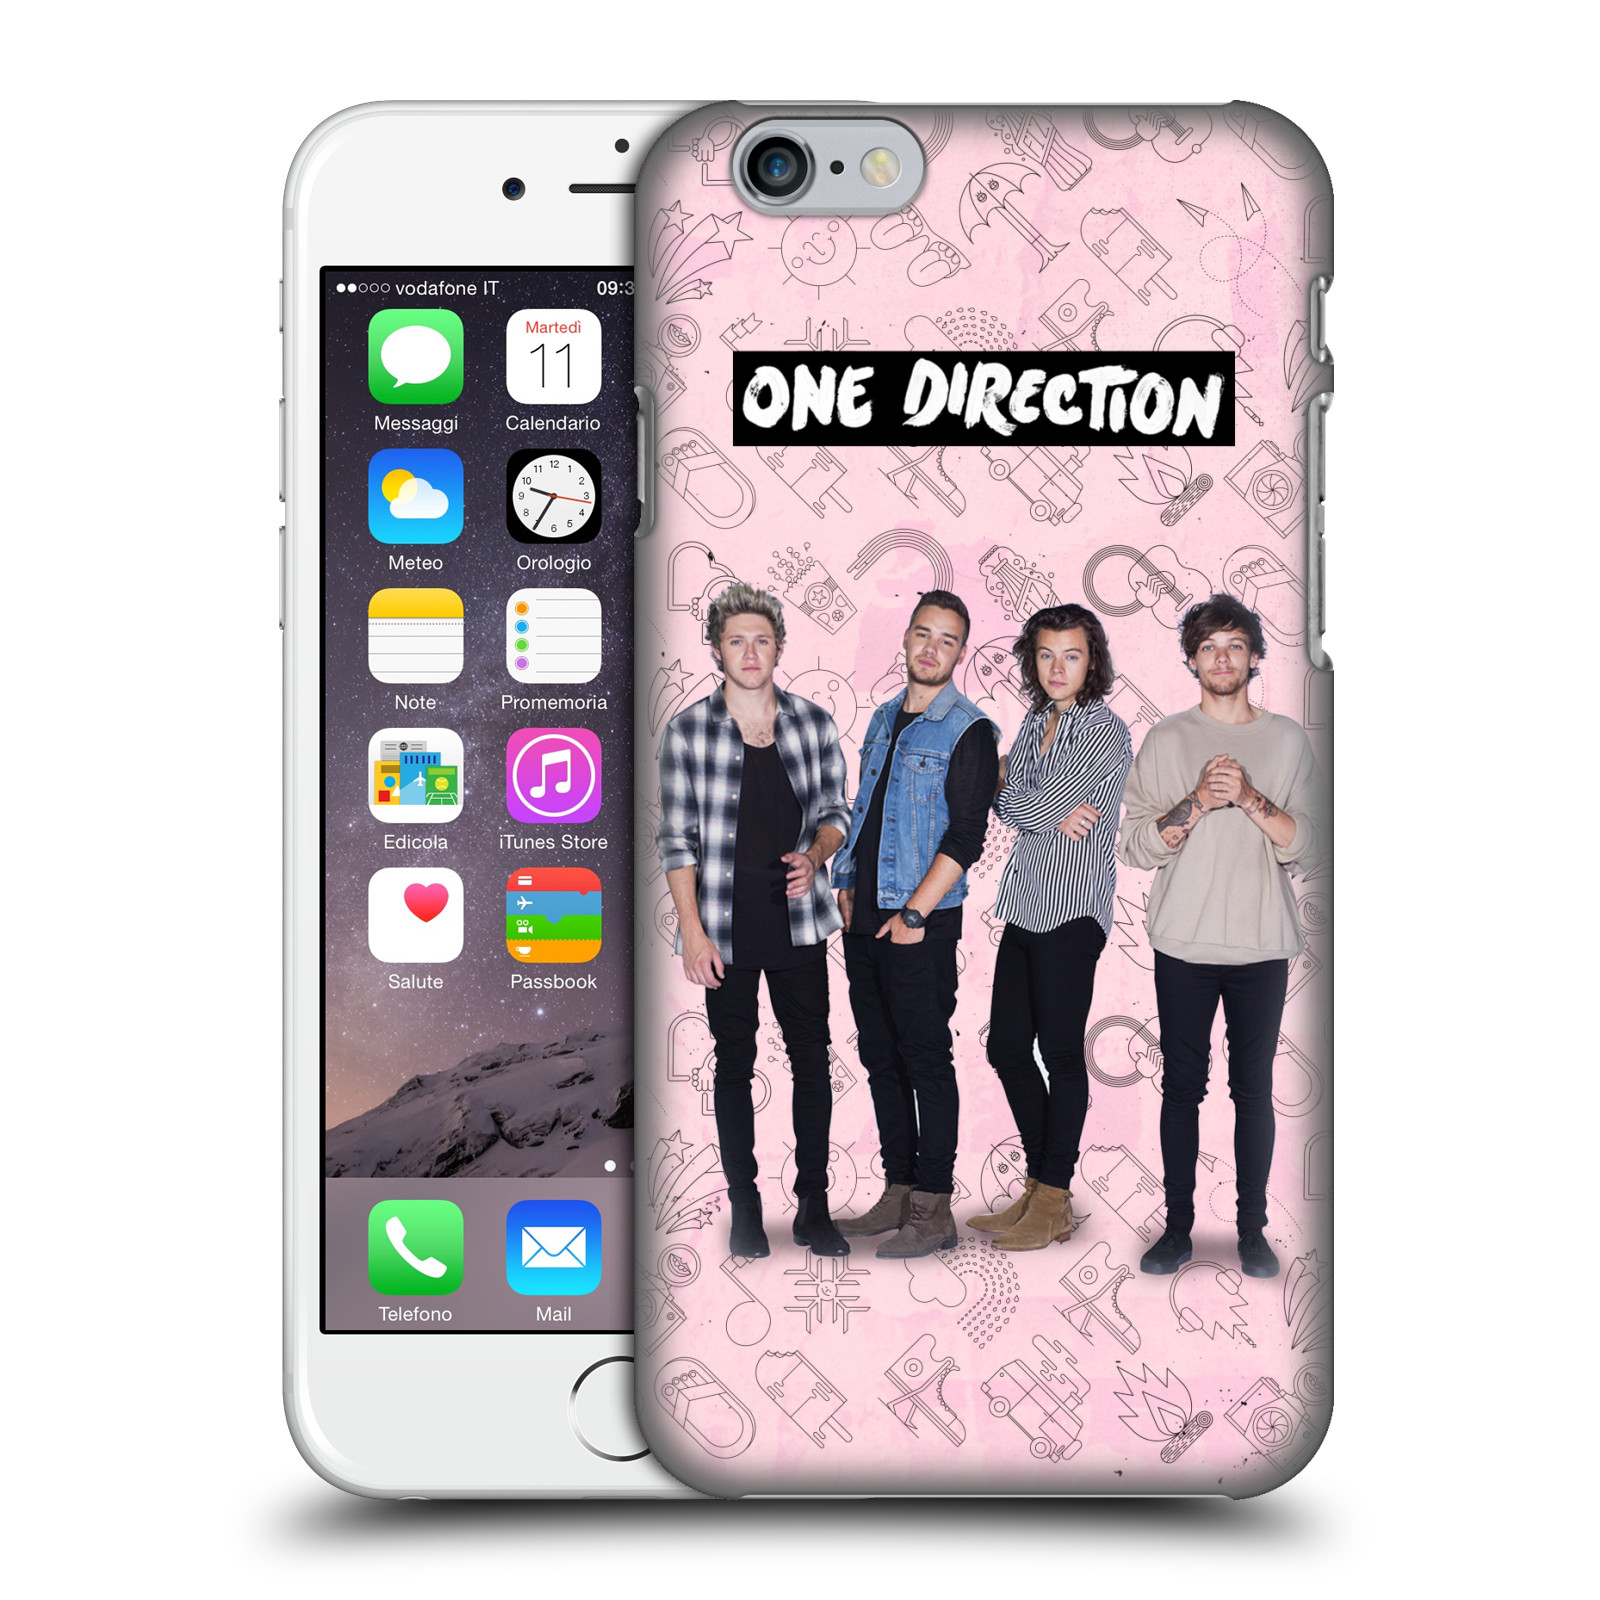 OFFICIAL-ONE-DIRECTION-GROUP-ICON-HARD-BACK-CASE-FOR-APPLE-iPHONE-PHONES